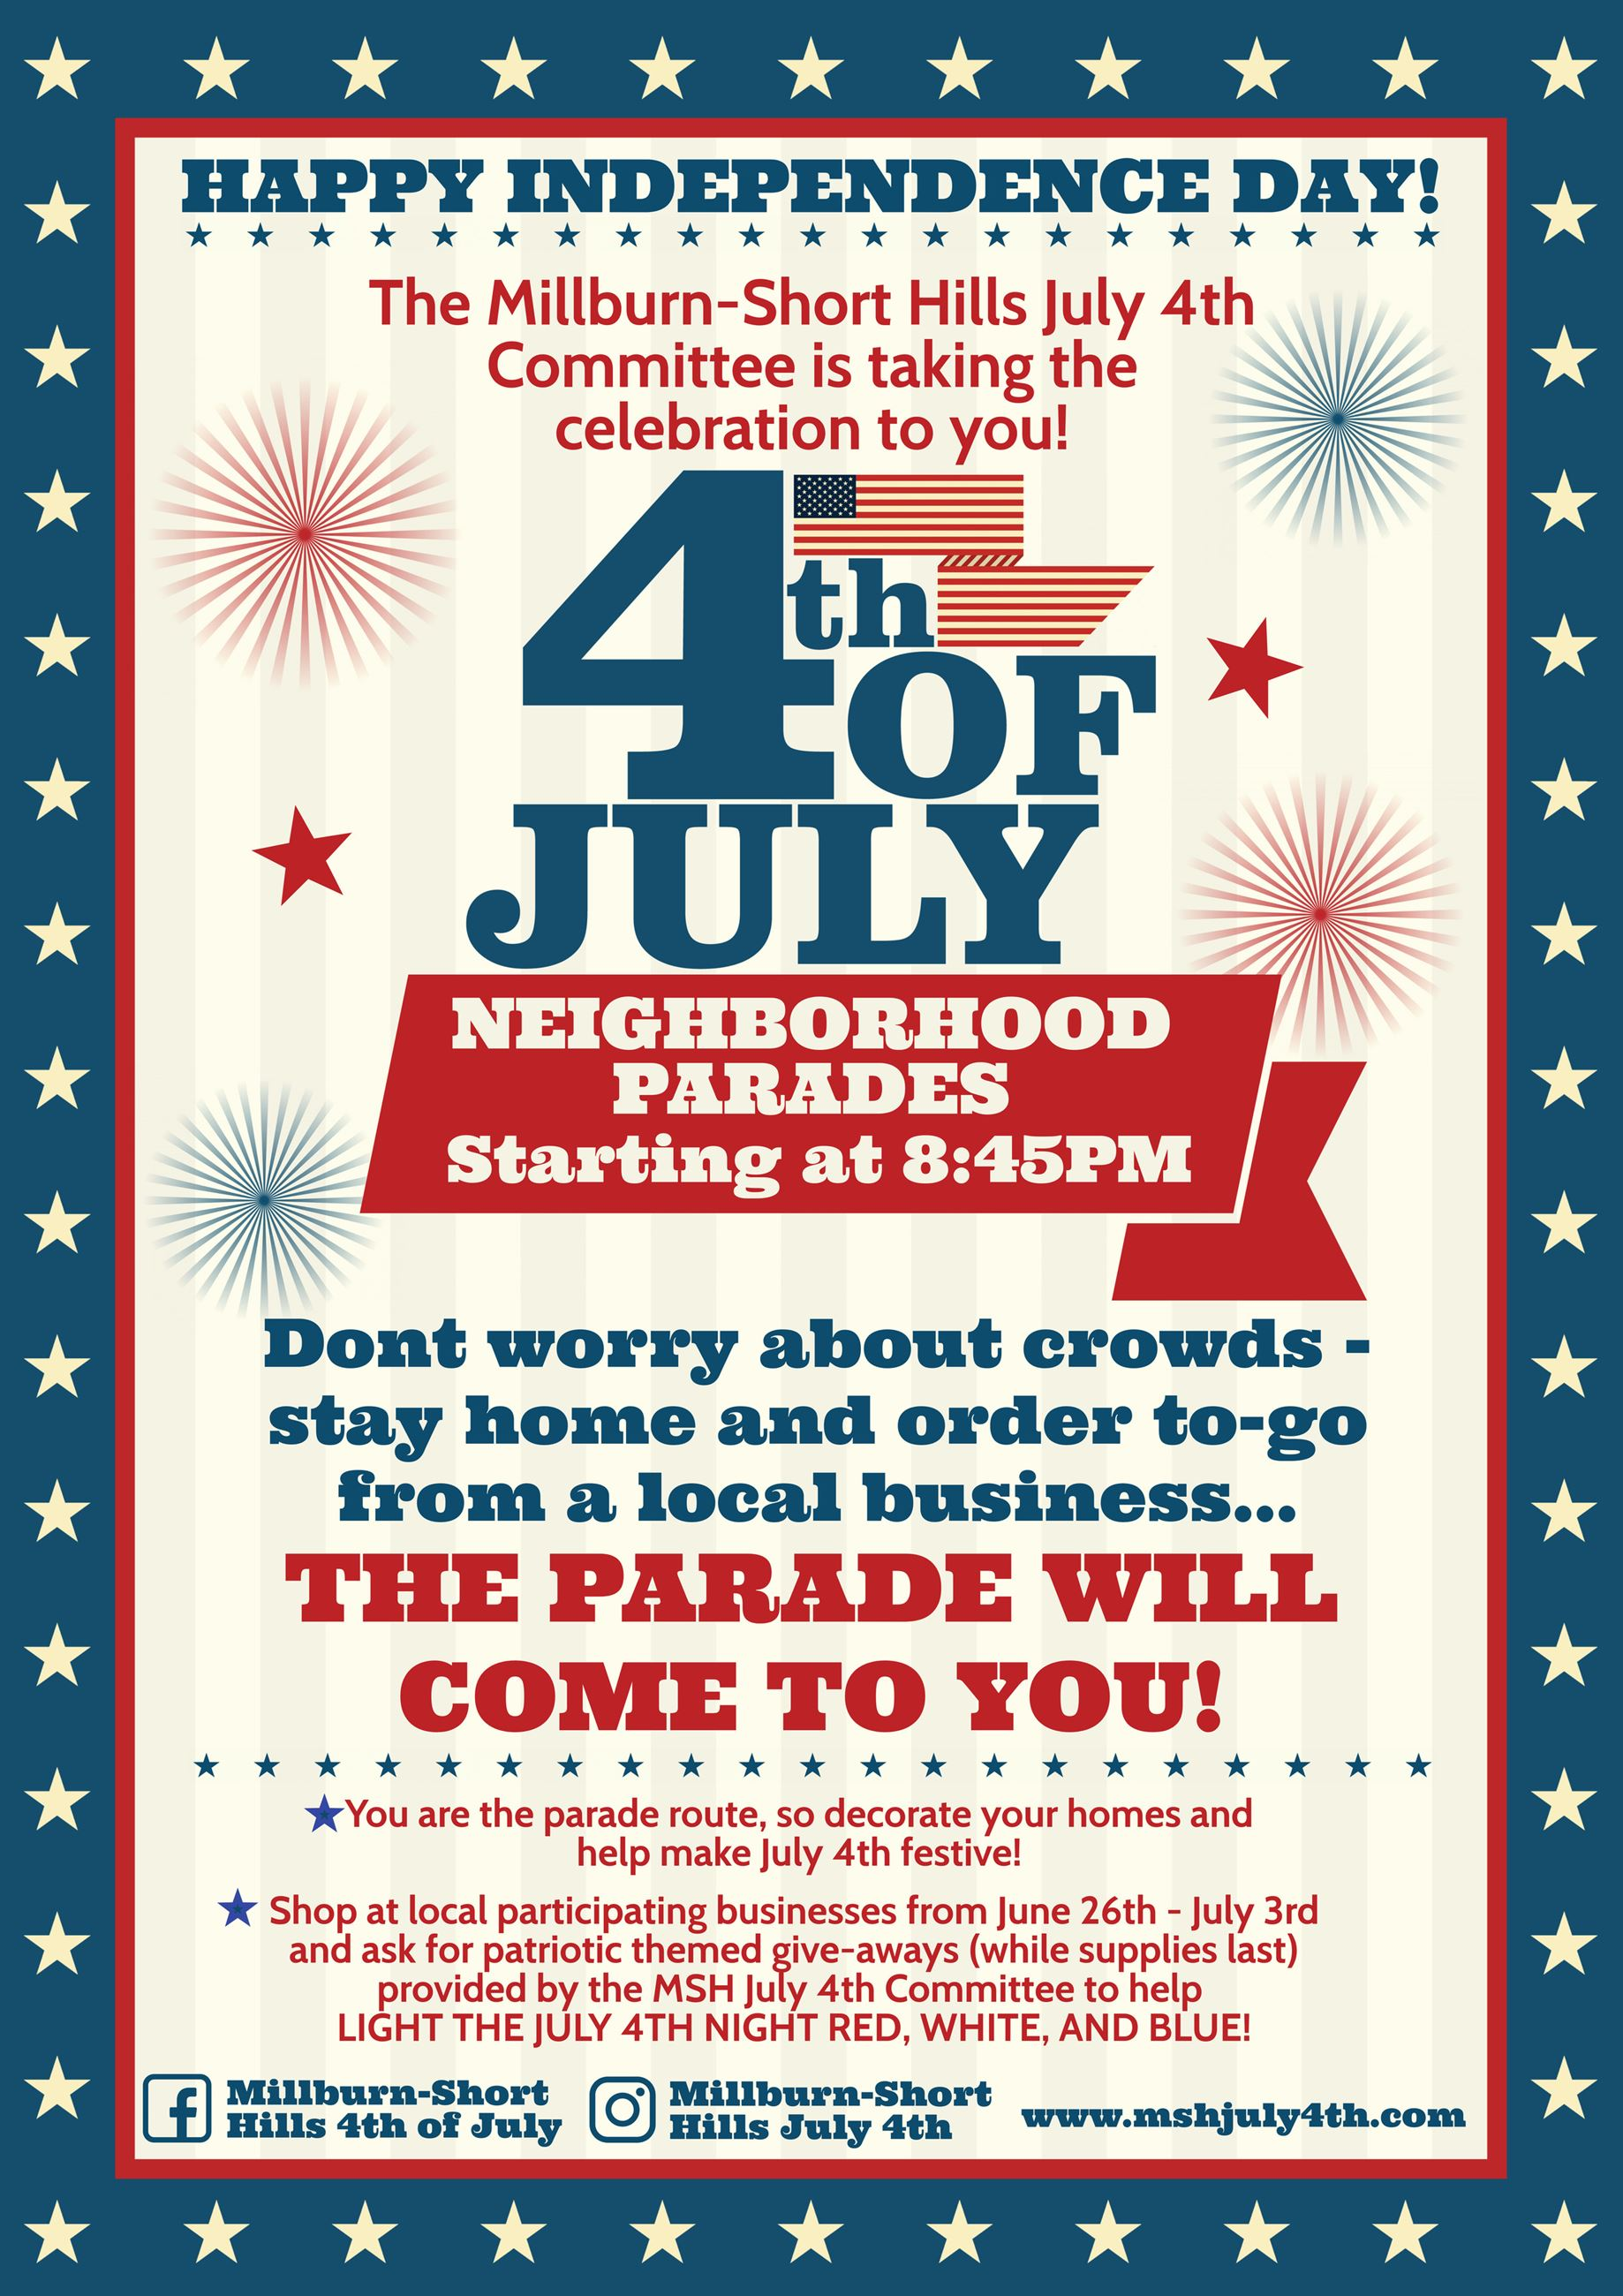 Millburn-Short Hills 4th of July 2020 Poster Opens in new window